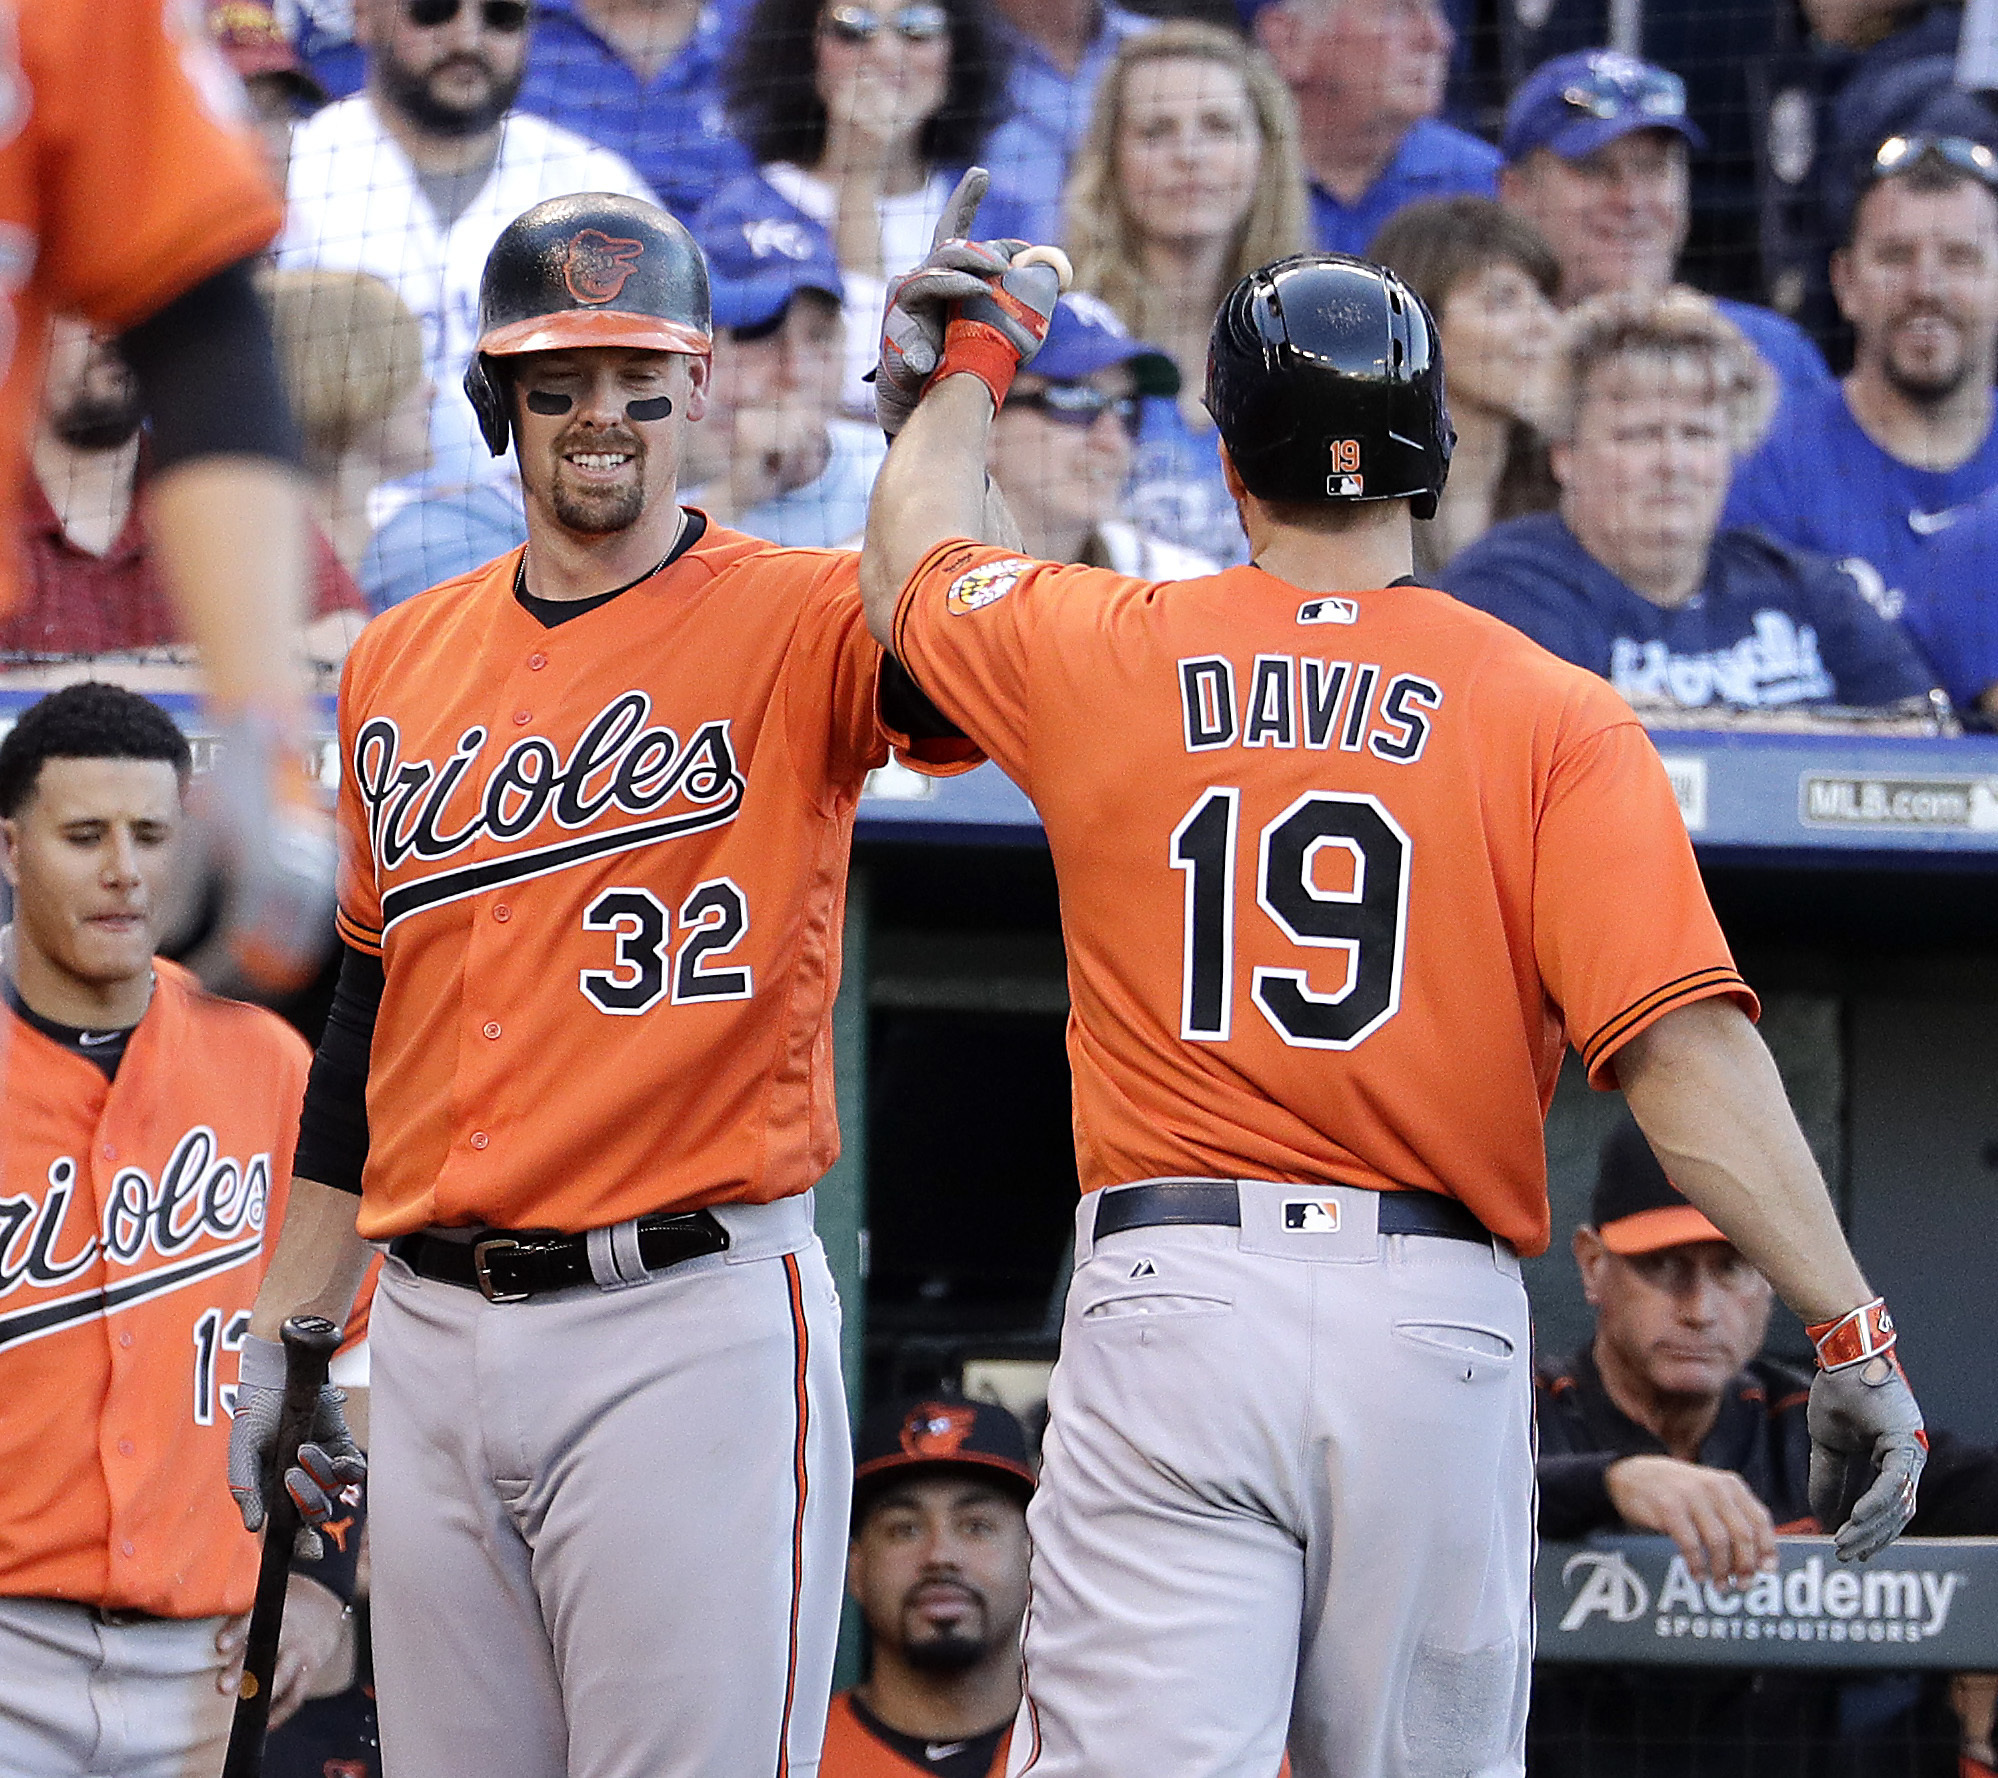 Baltimore Orioles' Chris Davis (19) celebrates with Matt Wieters (32) after Davis hit a solo home run during the second inning of a baseball game against the Kansas City Royals Saturday, April 23, 2016, in Kansas City, Mo. (AP Photo/Charlie Riedel)